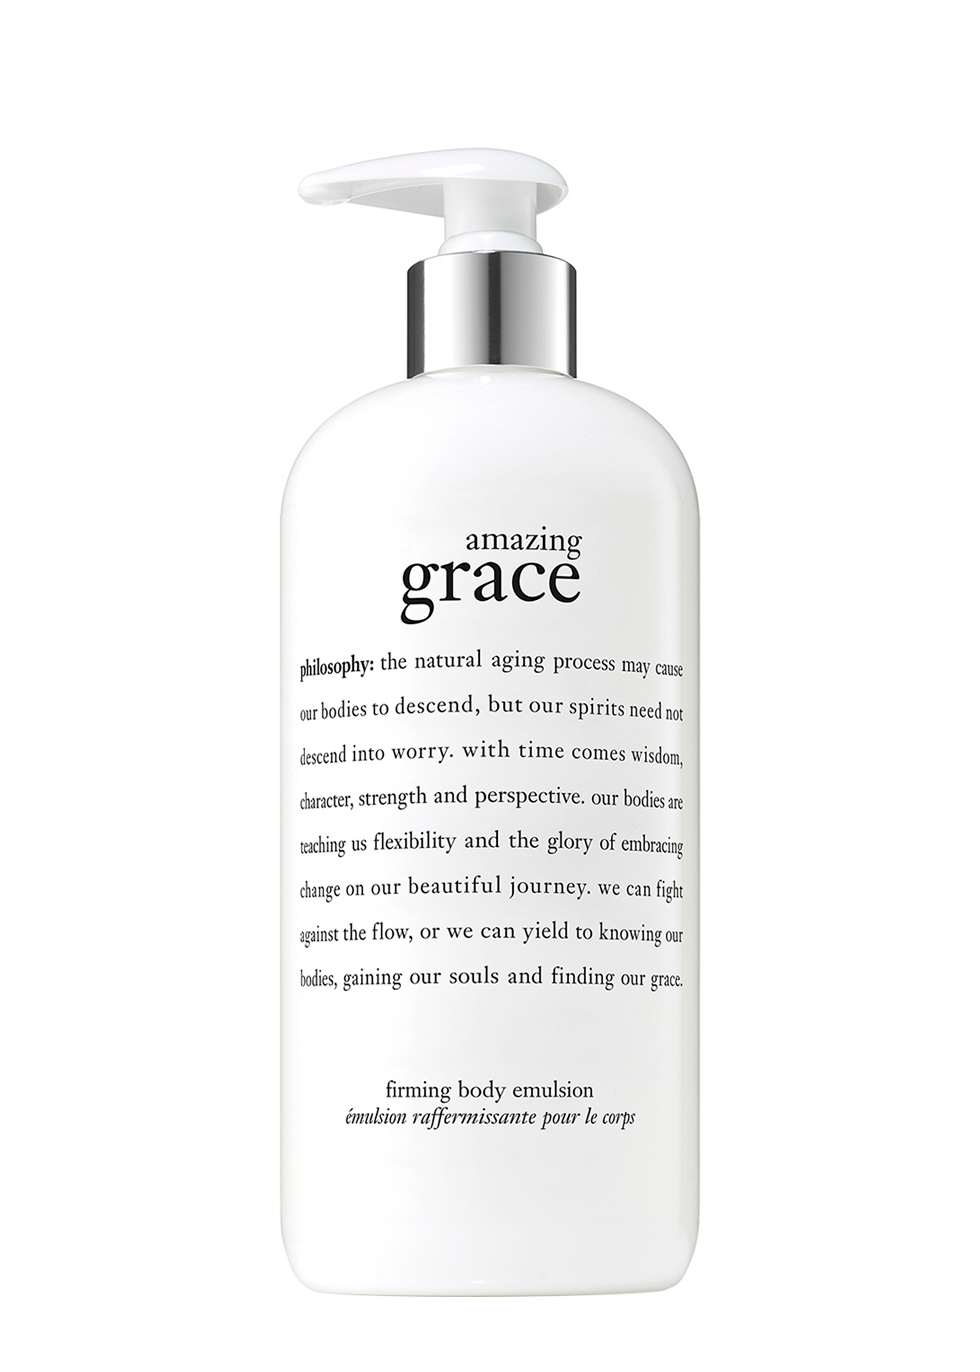 Amazing Grace Firming Body Emulsion 480ml